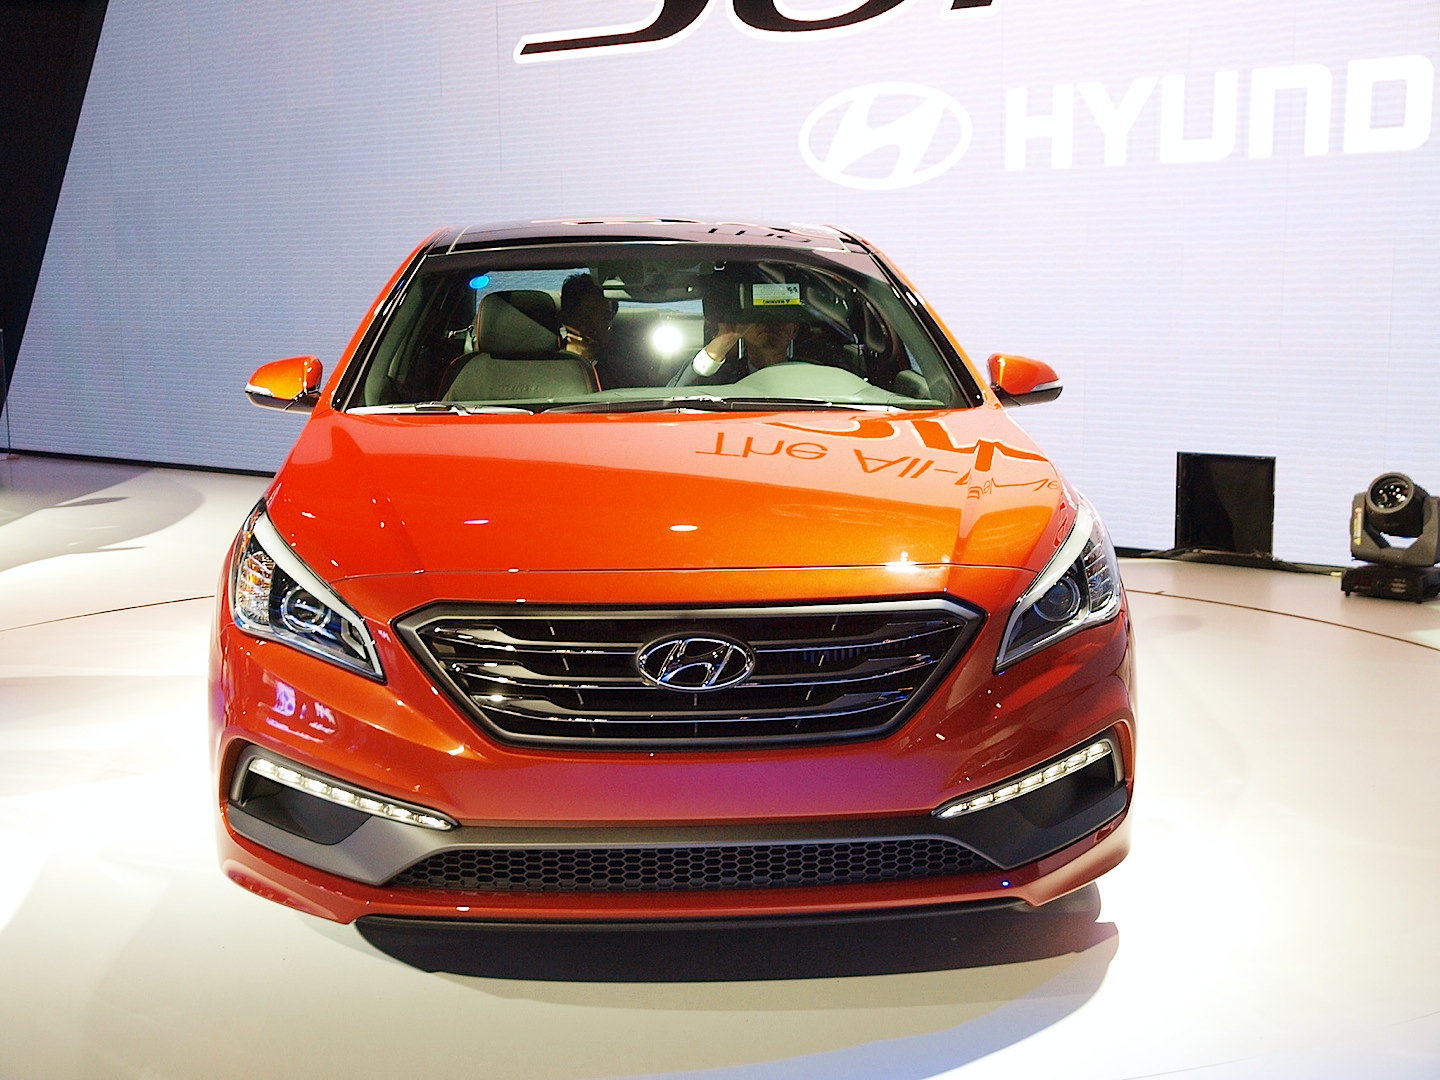 All New 2015 Hyundai Sonata Is Hot Enough For New York